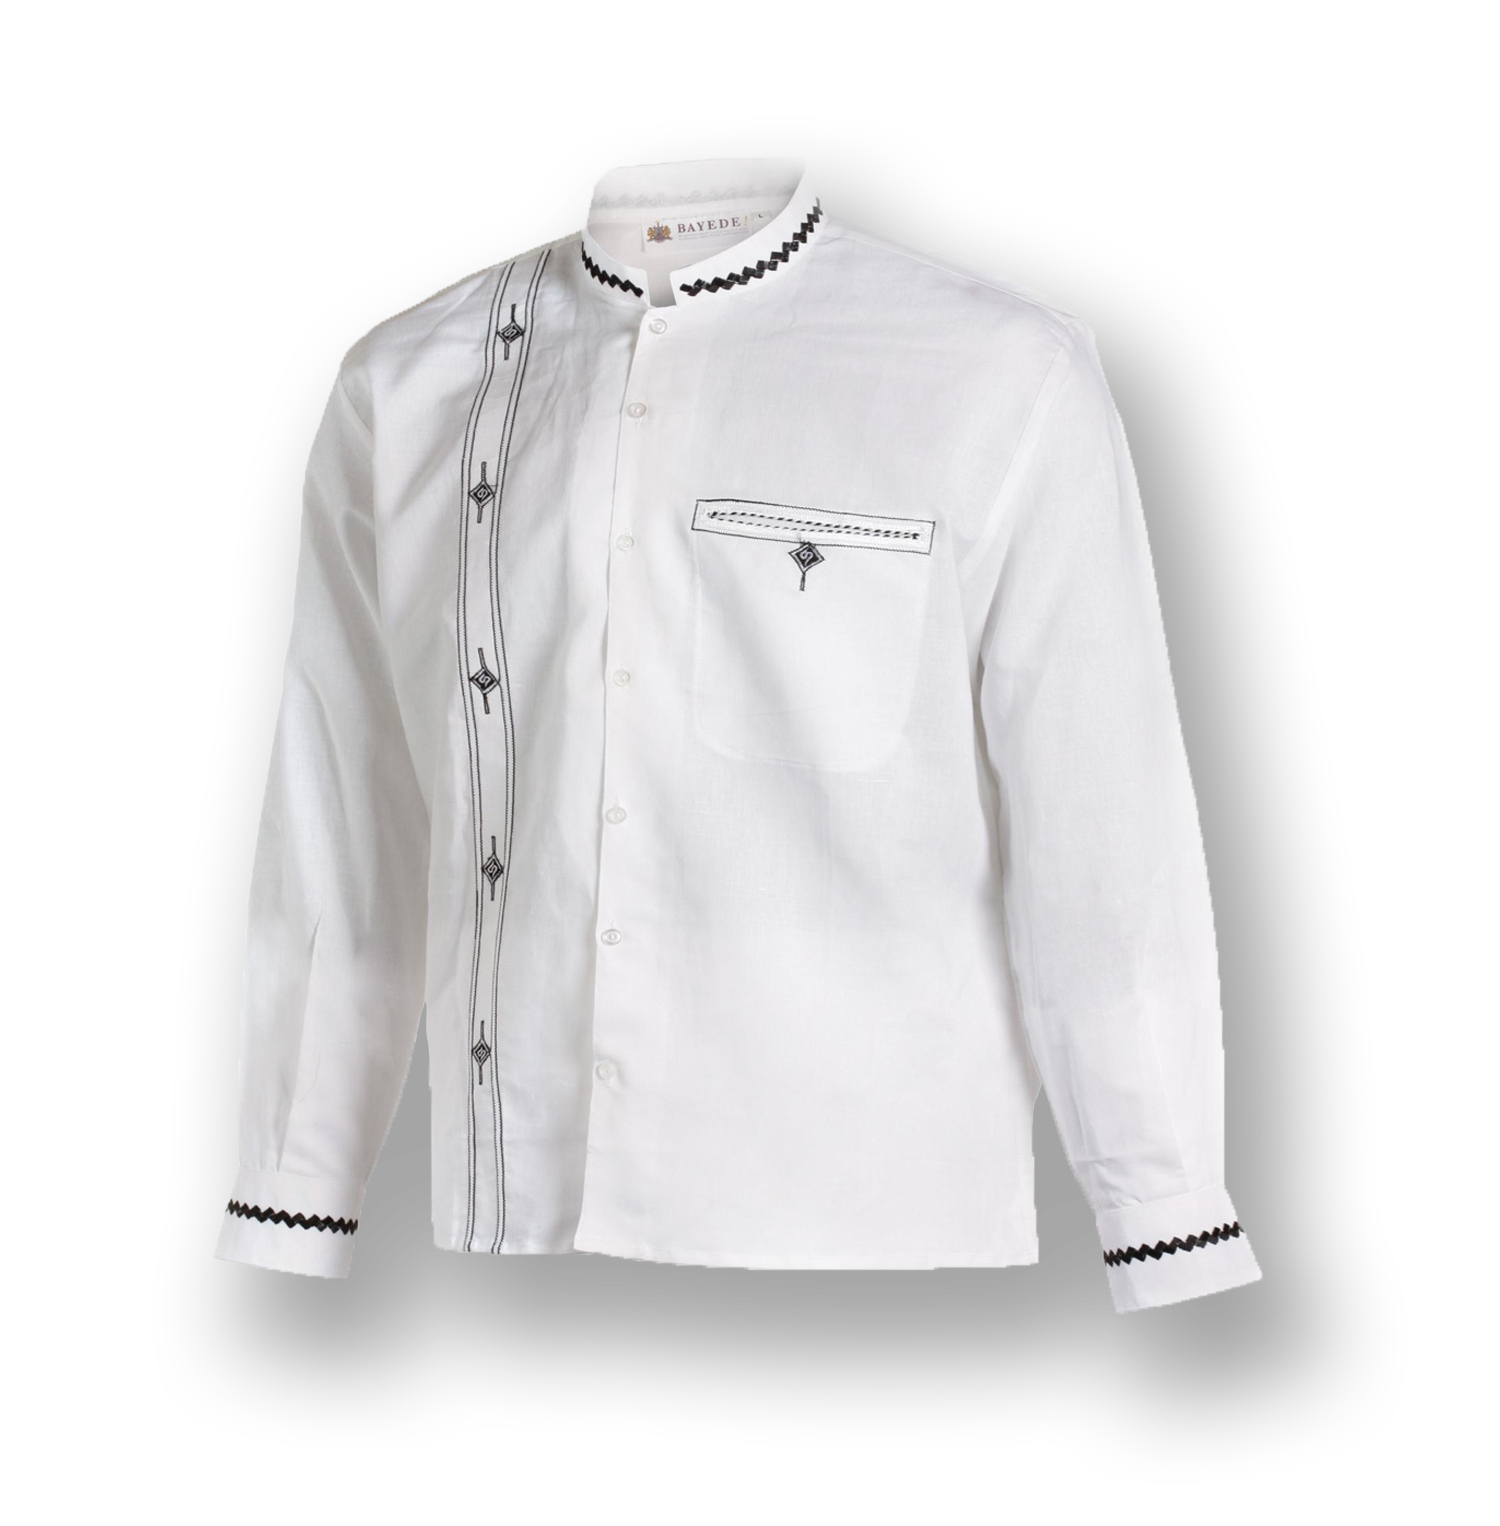 Bayede! White Chinese Collar